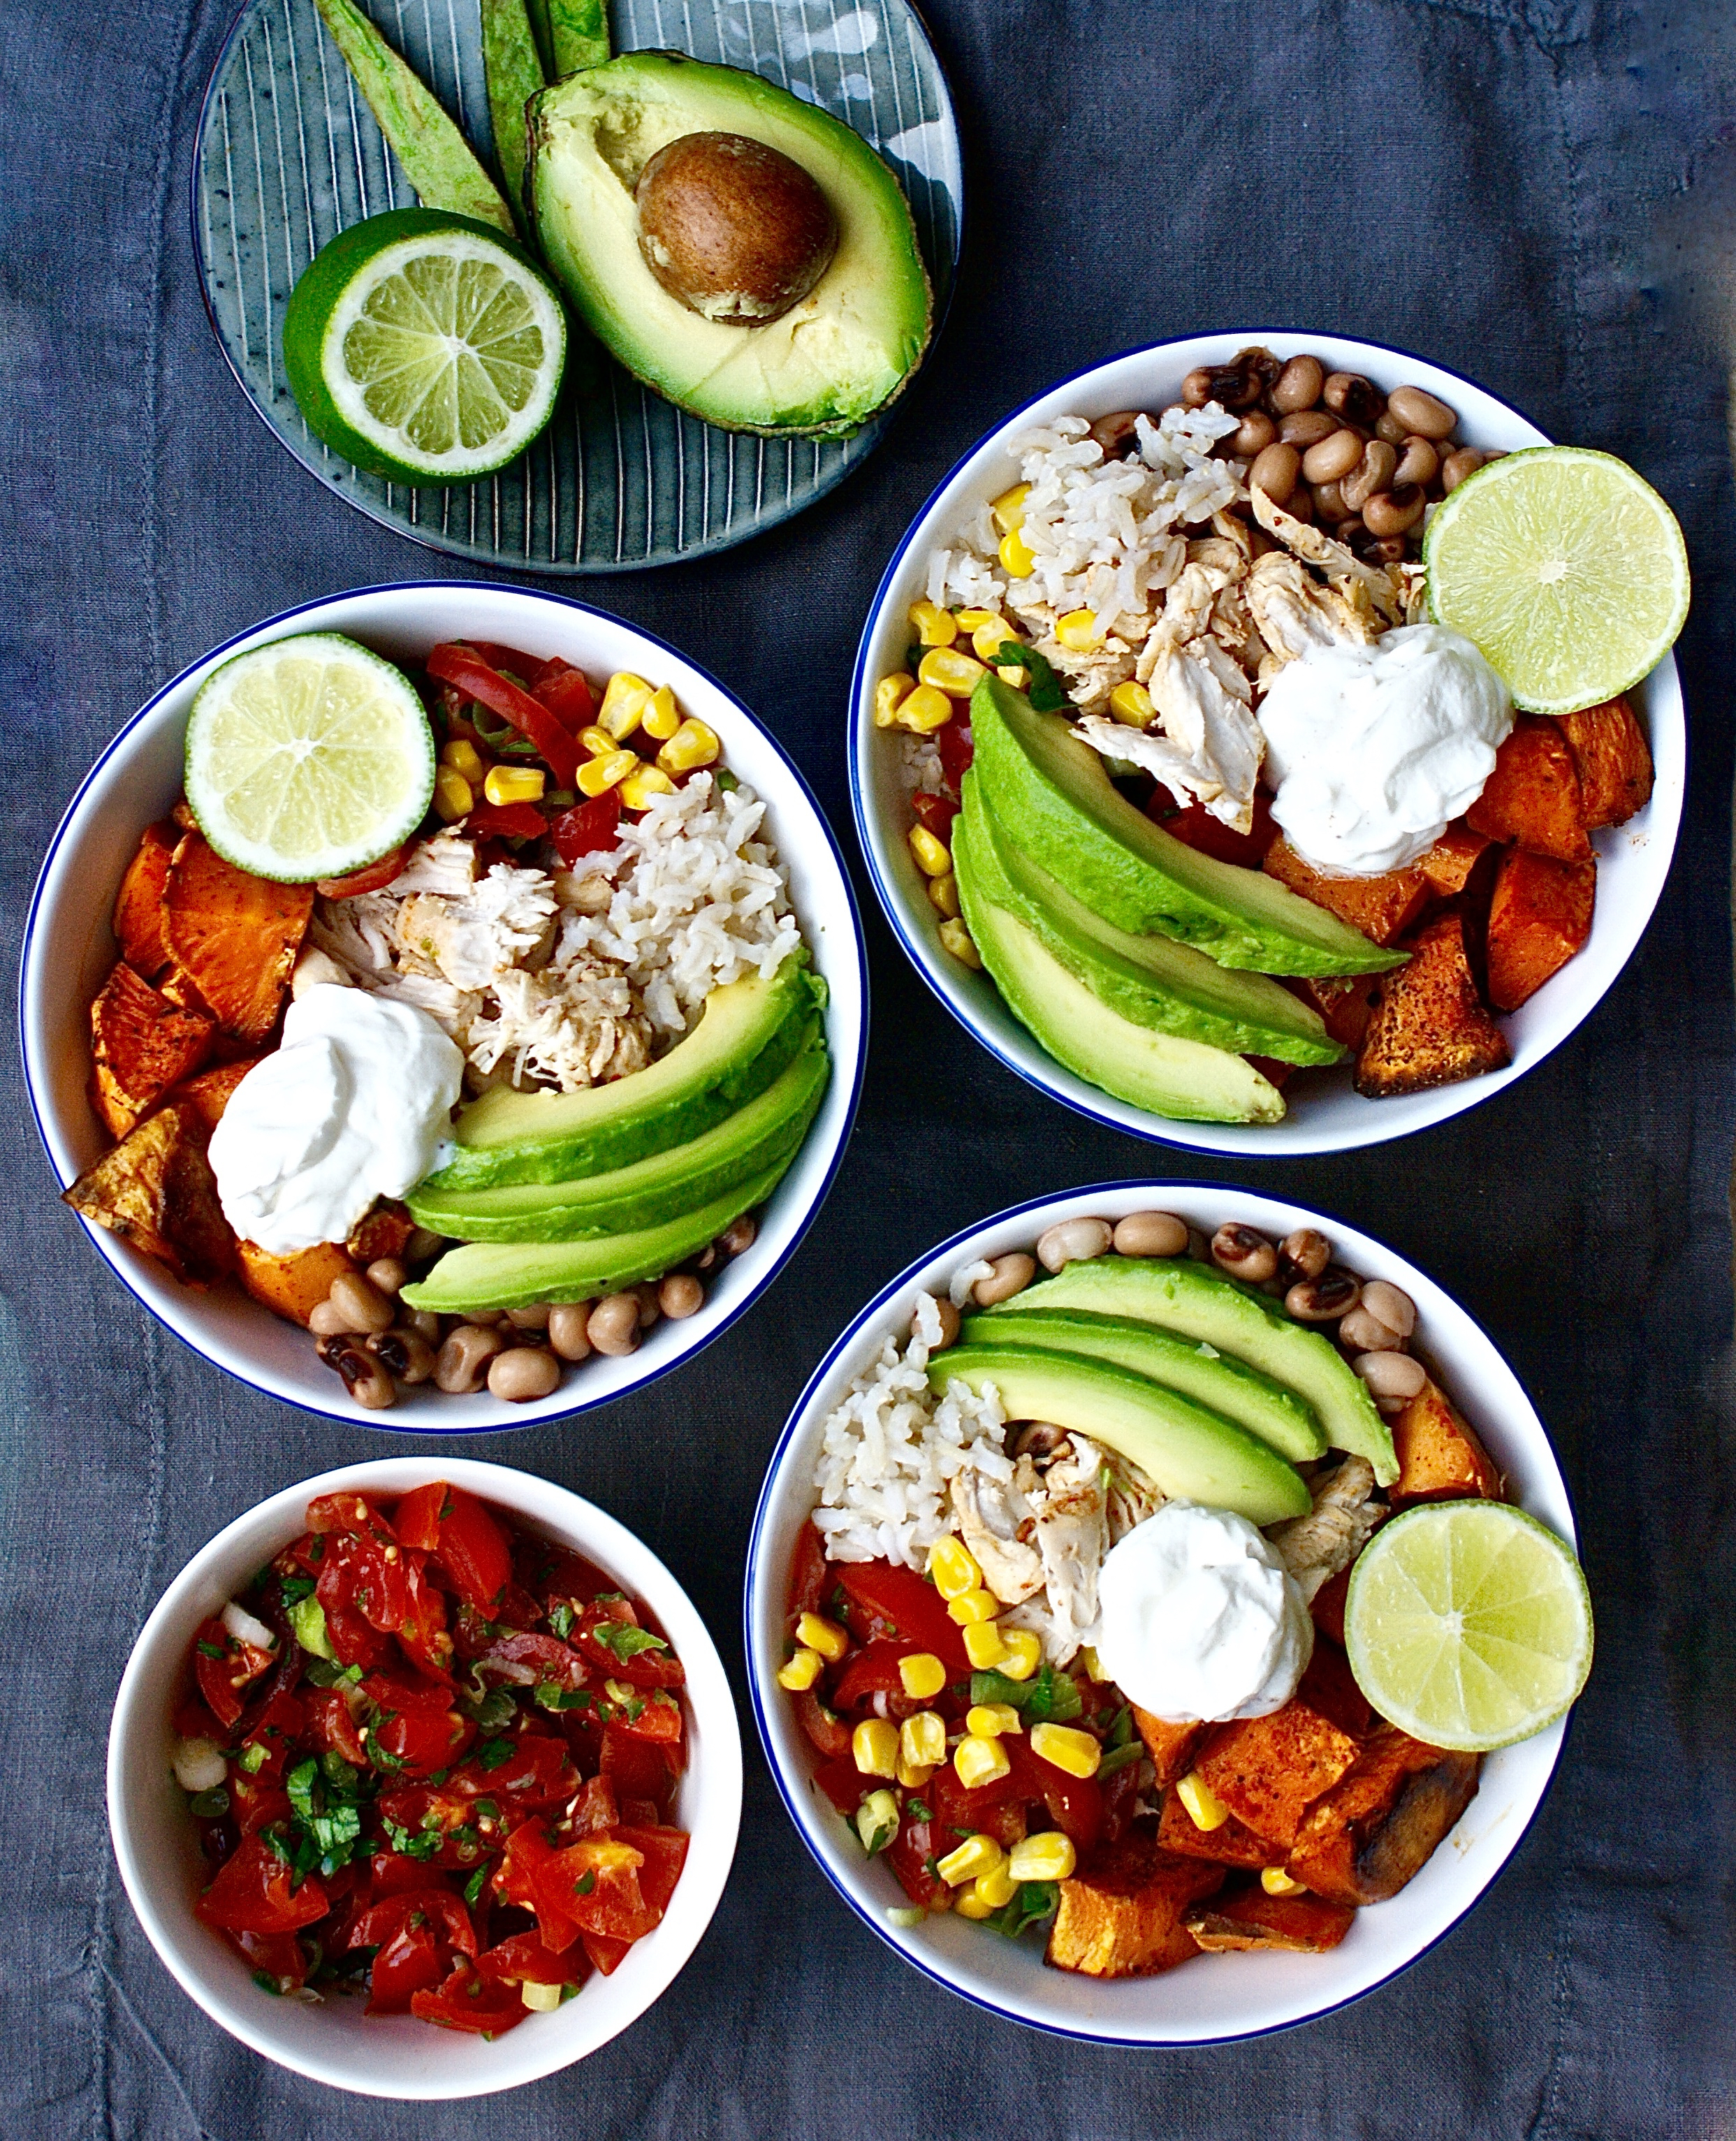 Mexican Burrito Rice Bowls With Shredded Chipotle Chicken Sweet Potato Beans Salsa And Avocado Dressing